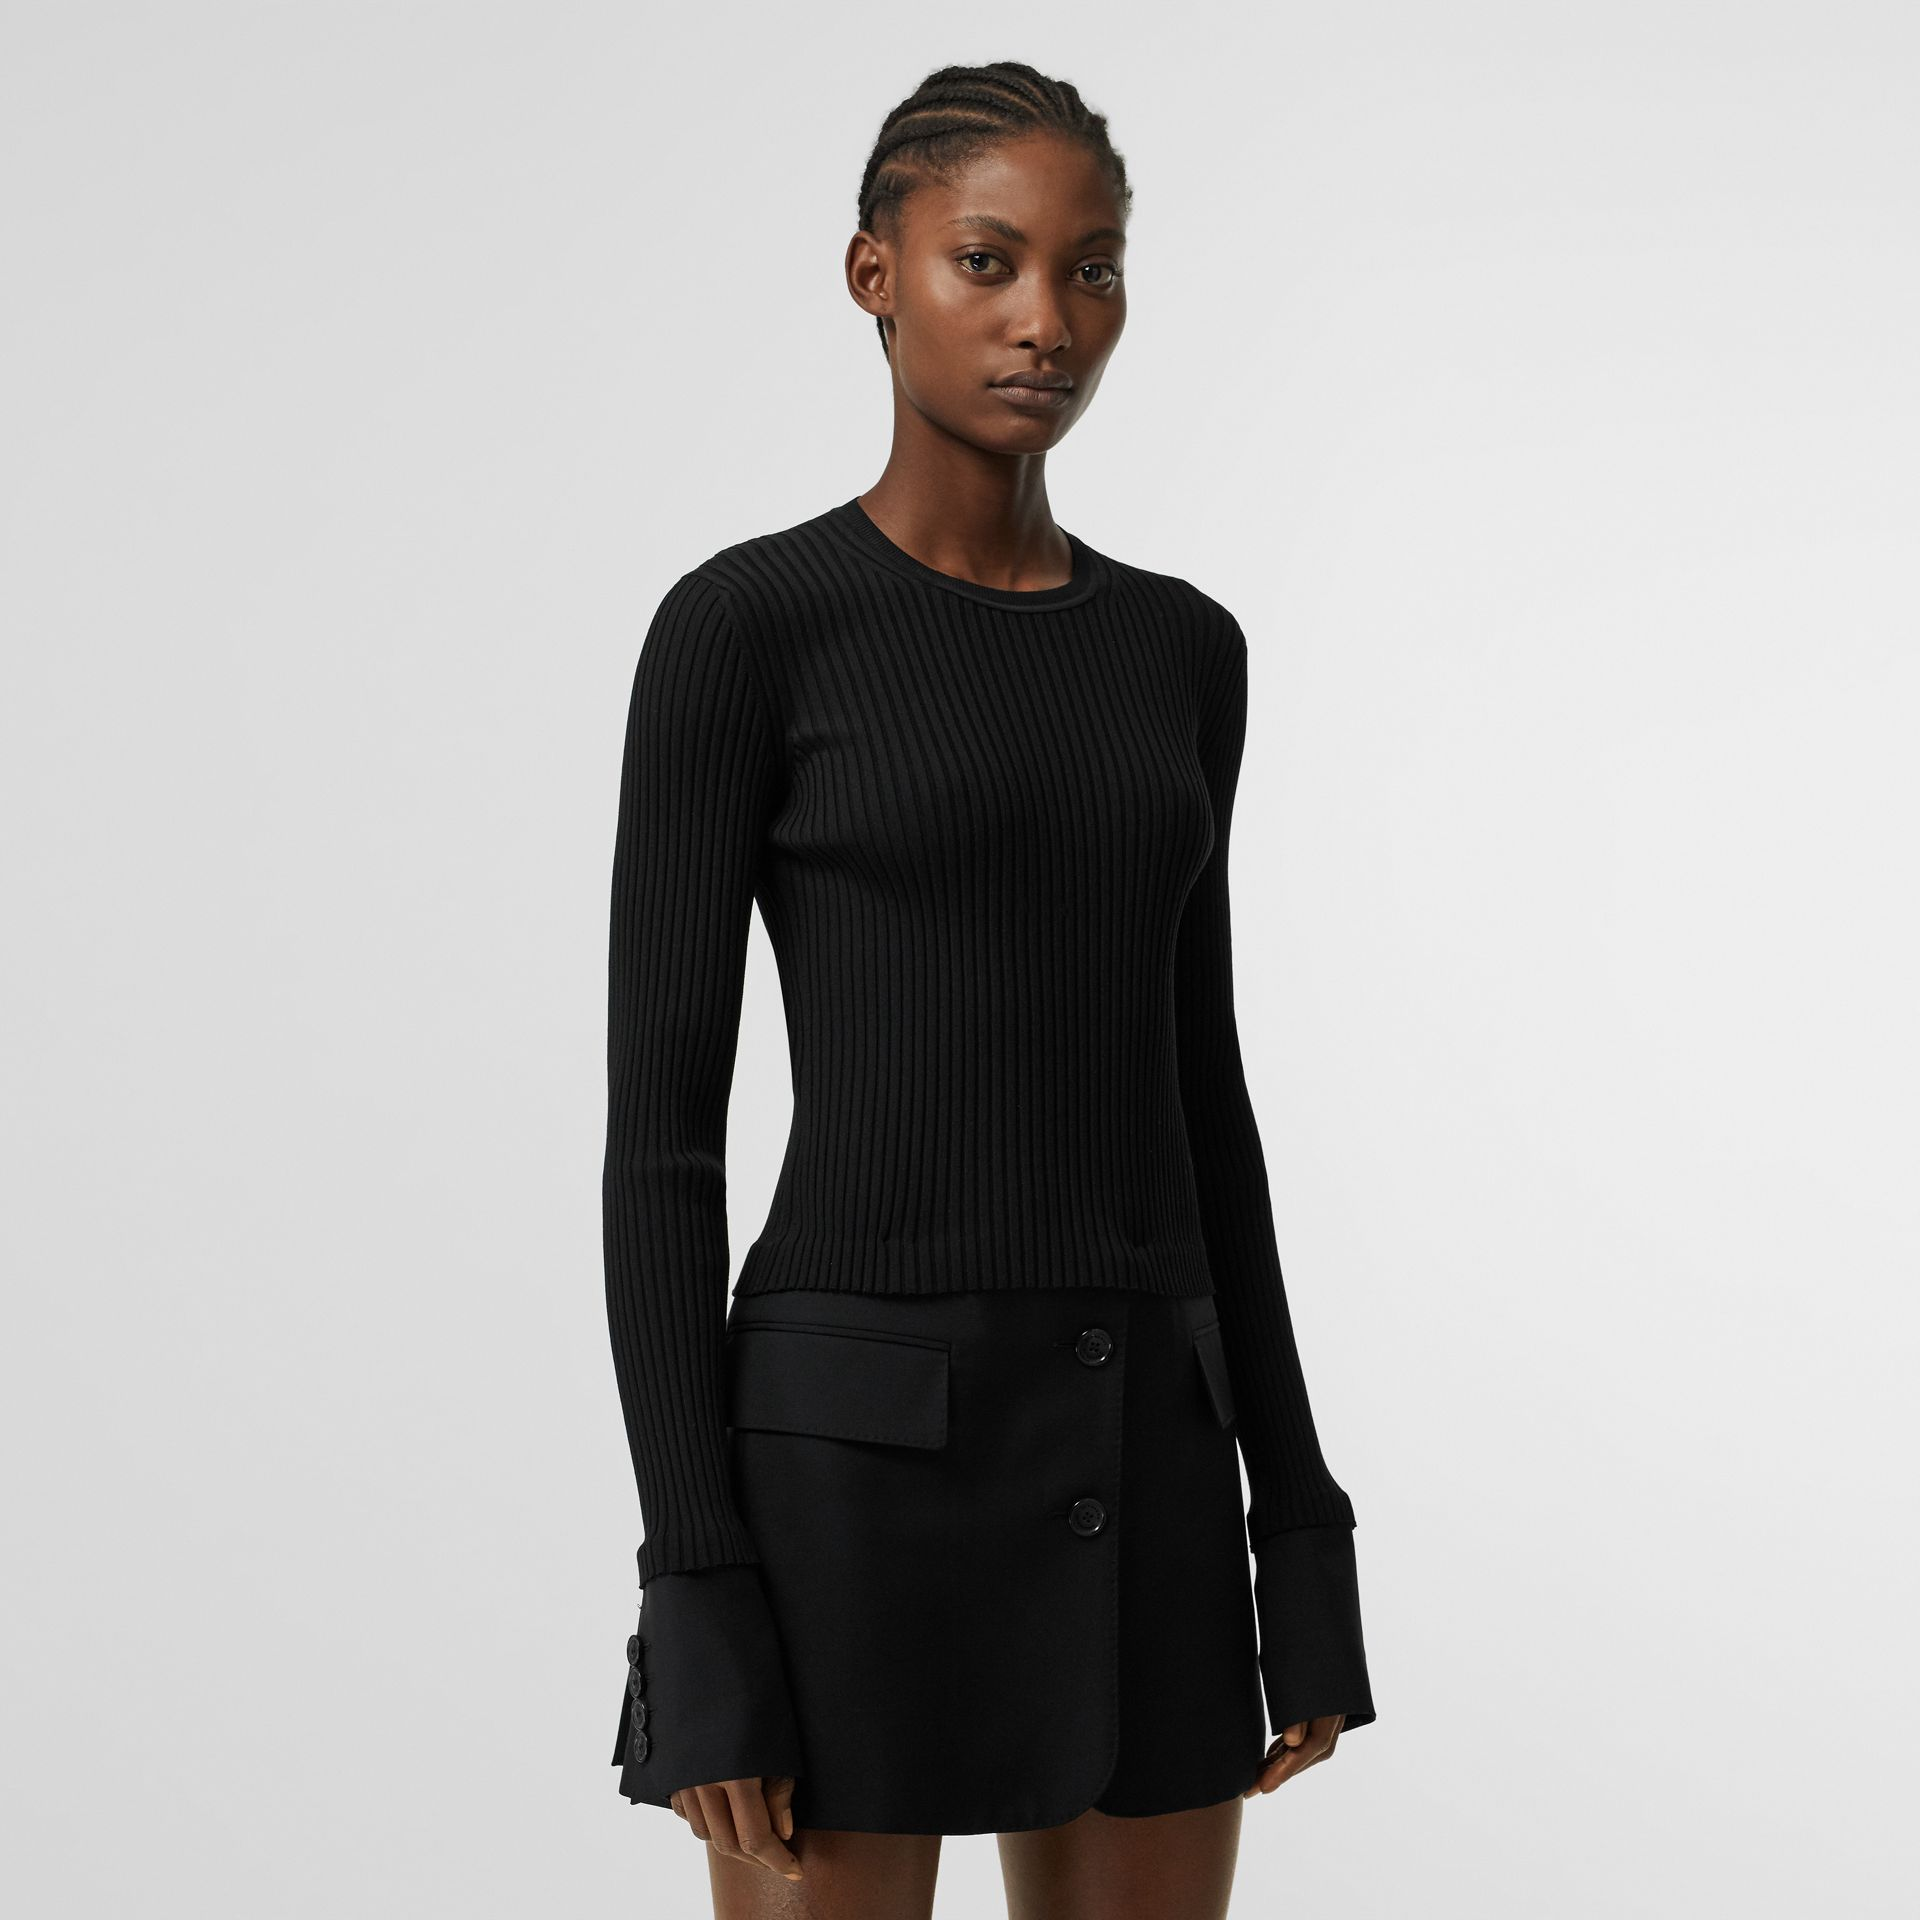 Tailored Hem Rib Knit Wool Mohair Dress in Black - Women | Burberry Hong Kong - gallery image 5